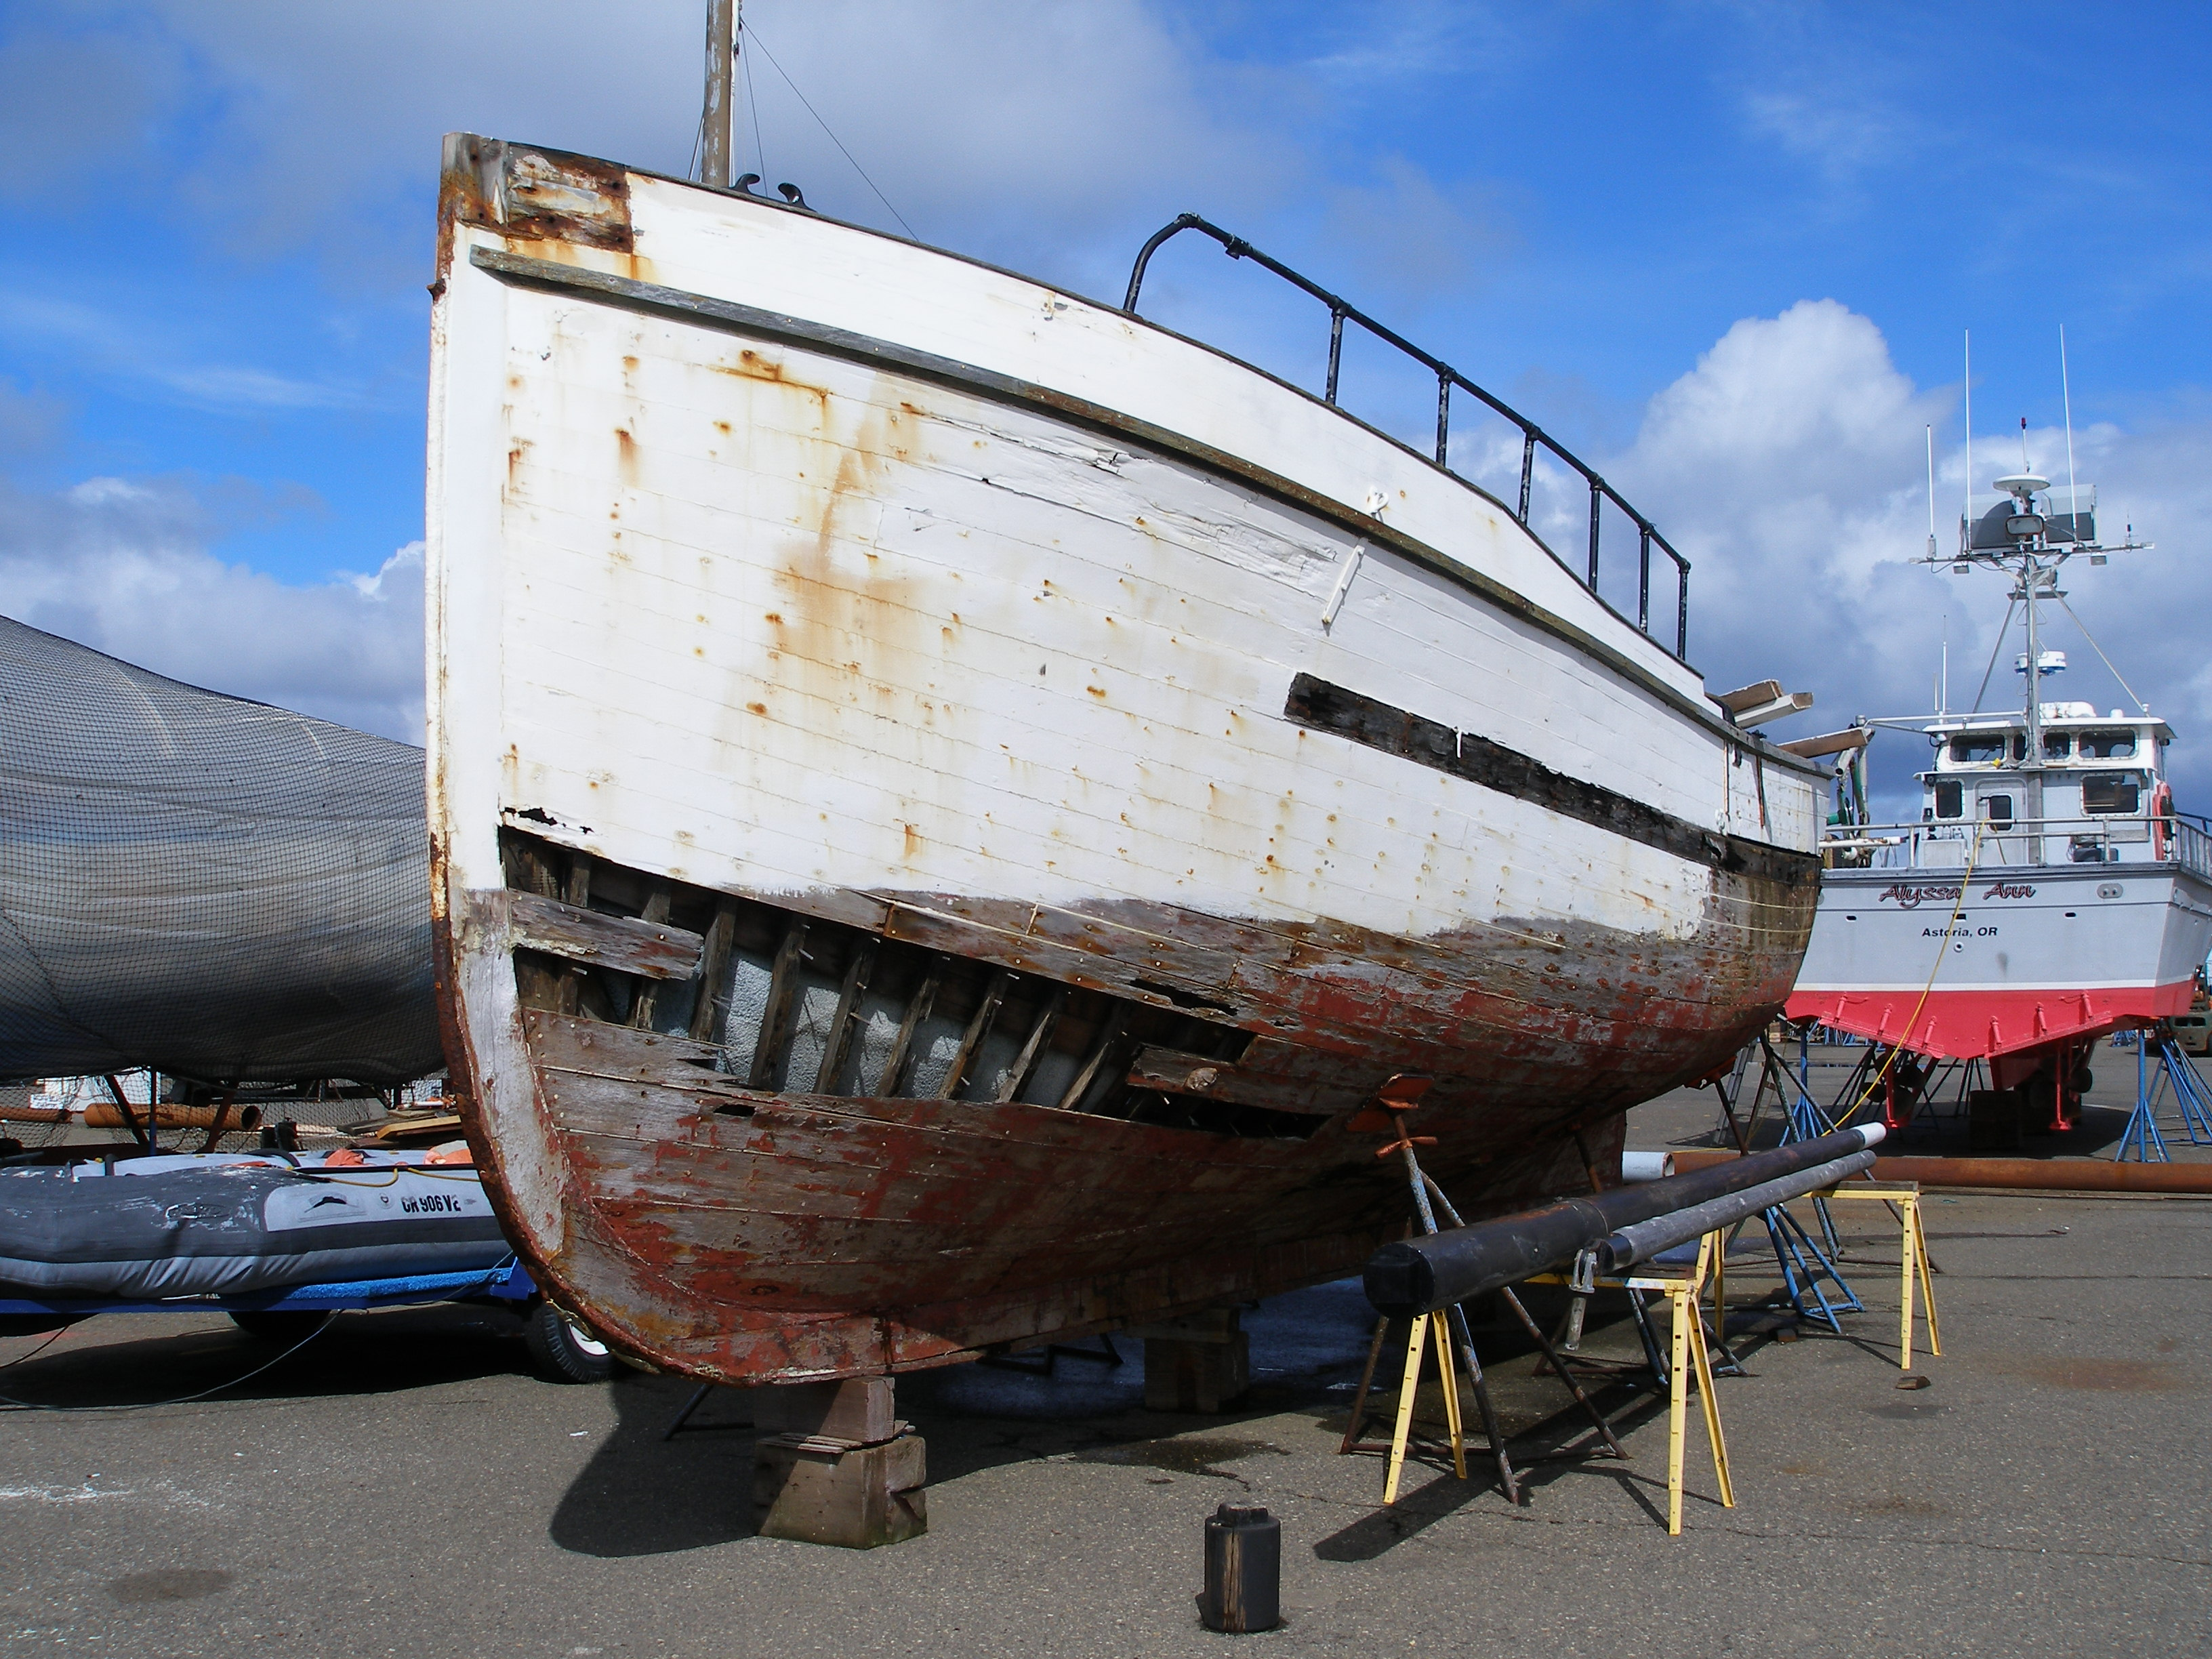 Slated for demolition and disposal, this old hull sits waiting